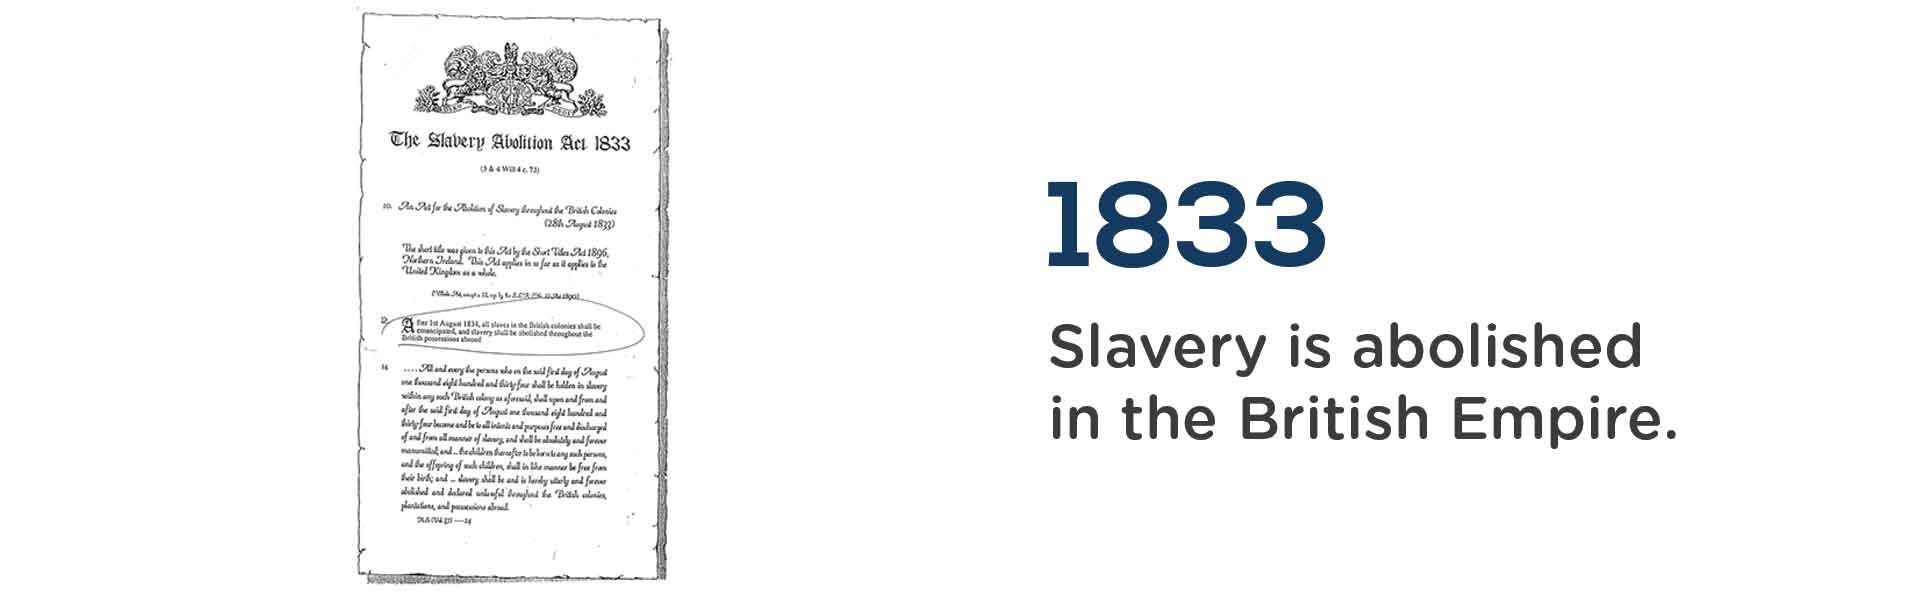 Slavery was abolished in the UK in 1833.Wrigley Claydon Solicitors, Trusted for 200 years